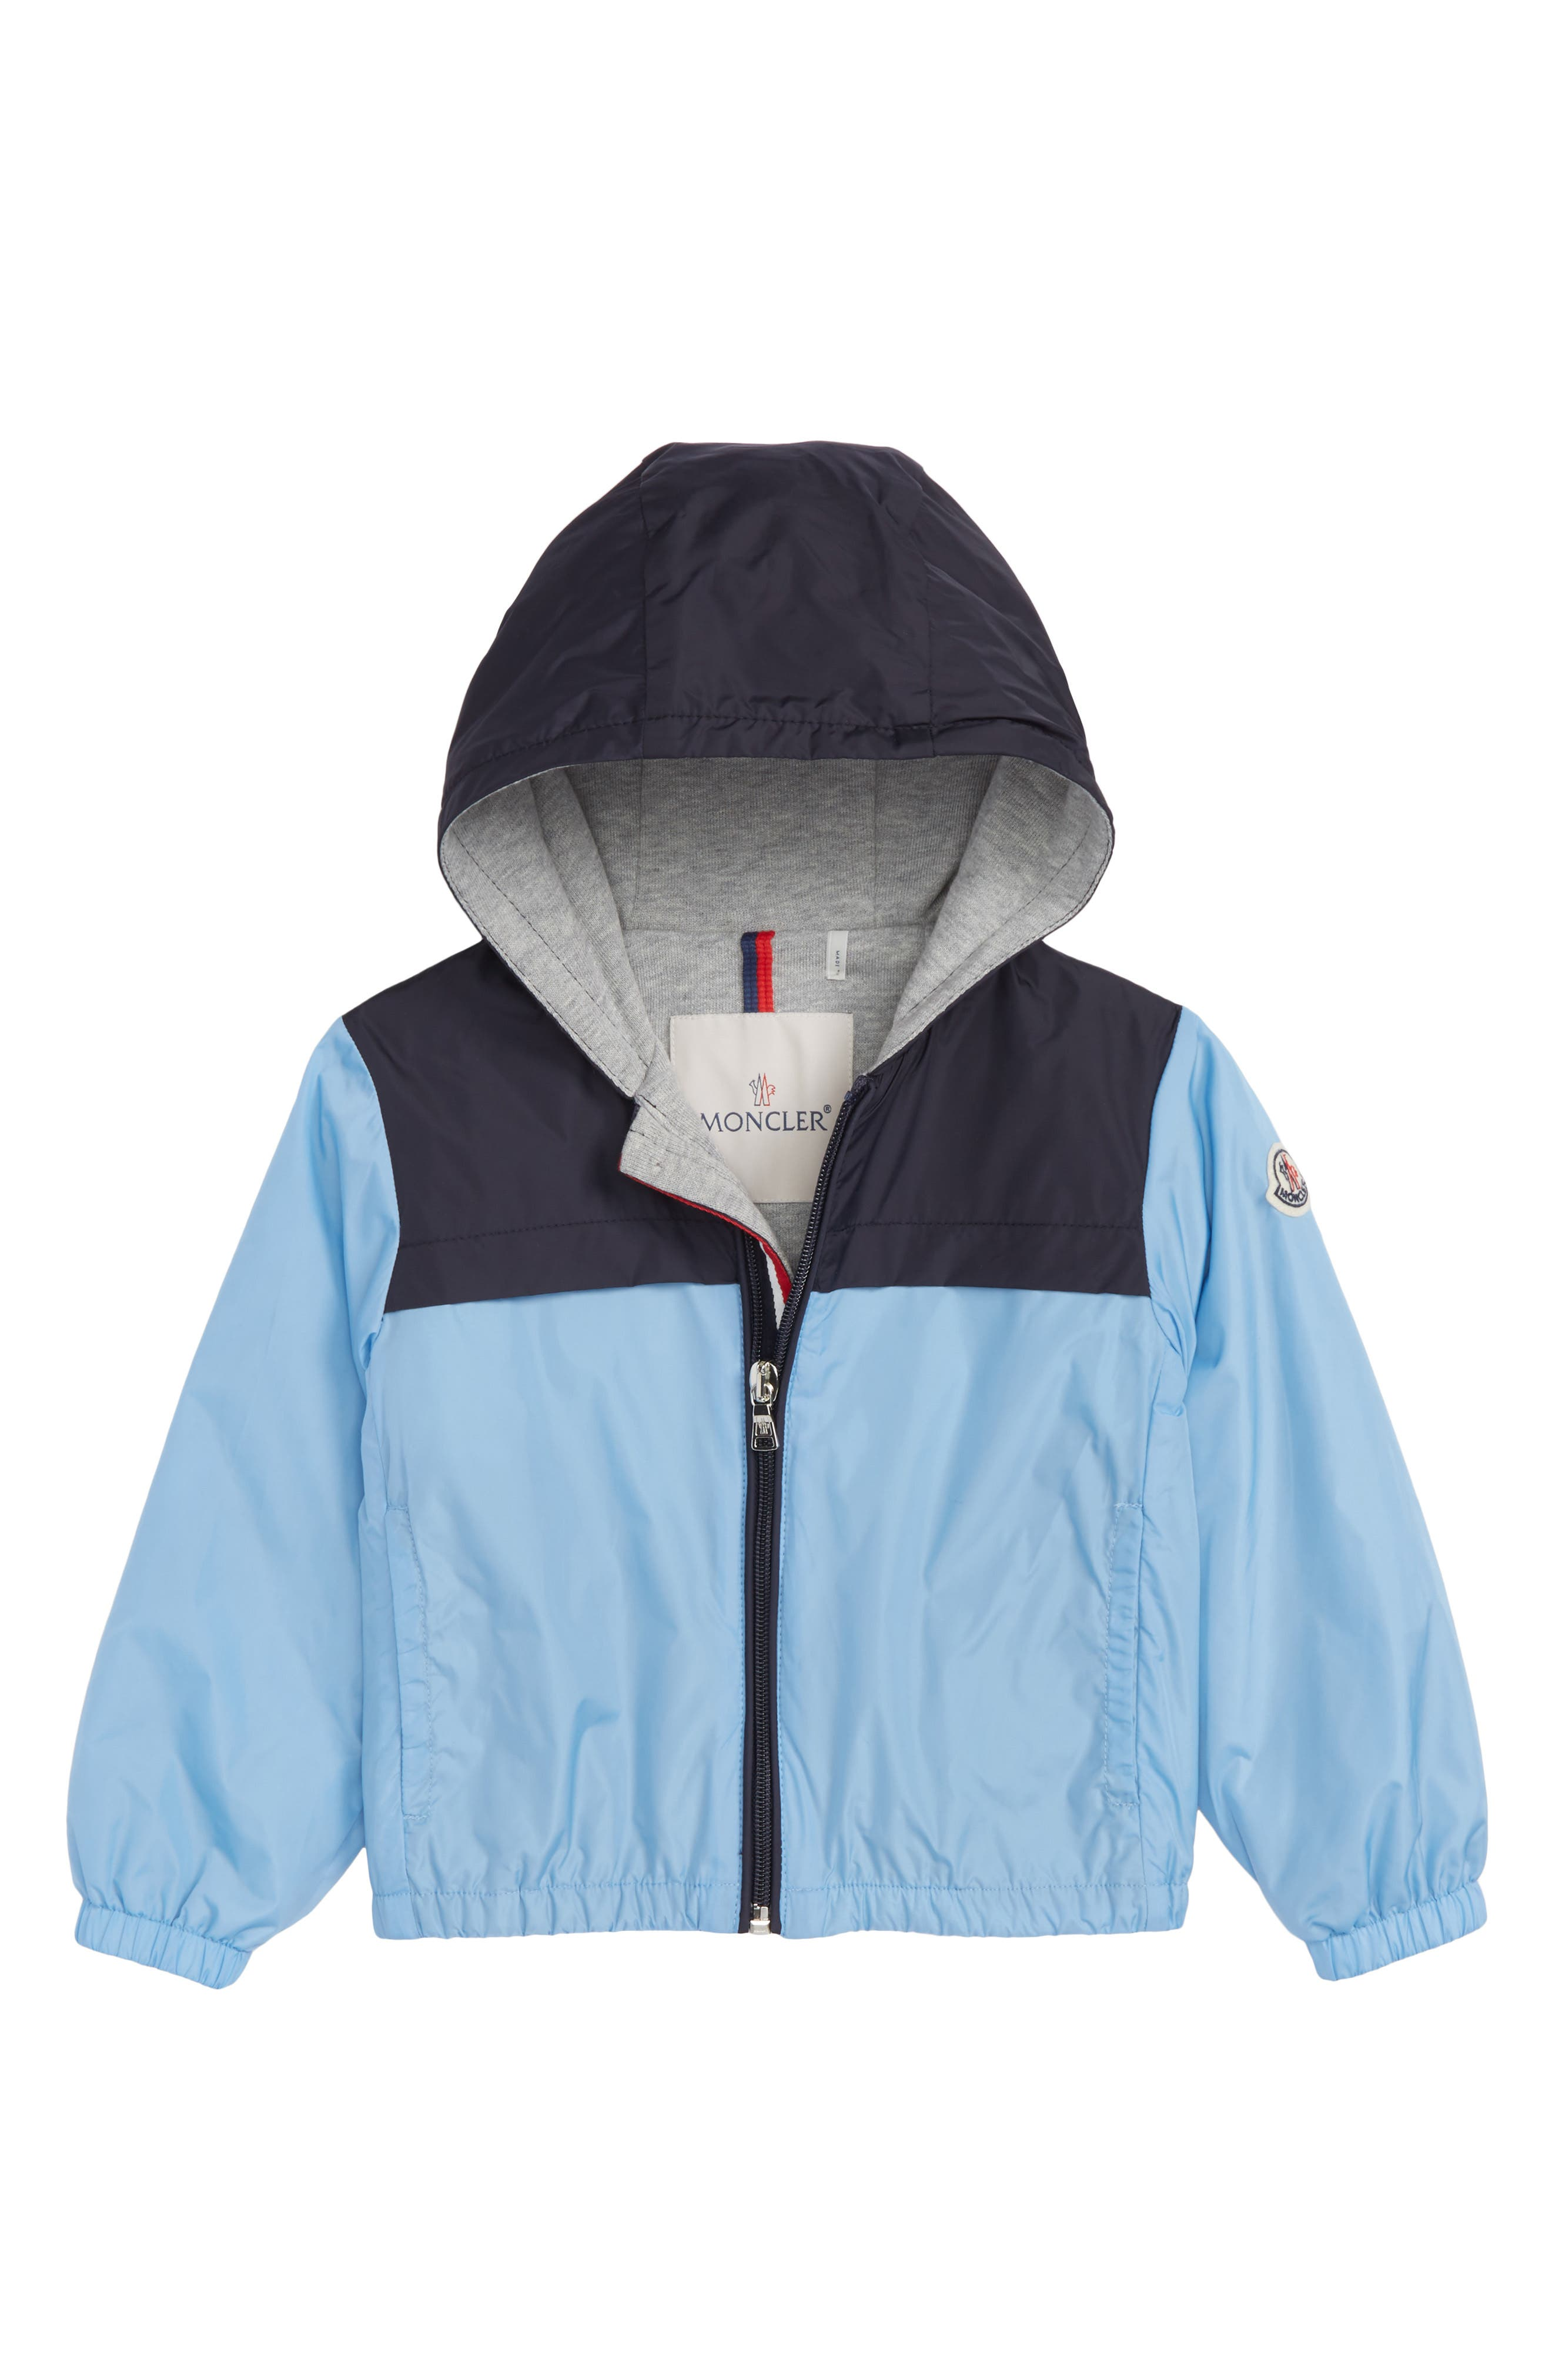 Izon Jersey Lined Hoodie,                         Main,                         color, BLUE/ NAVY